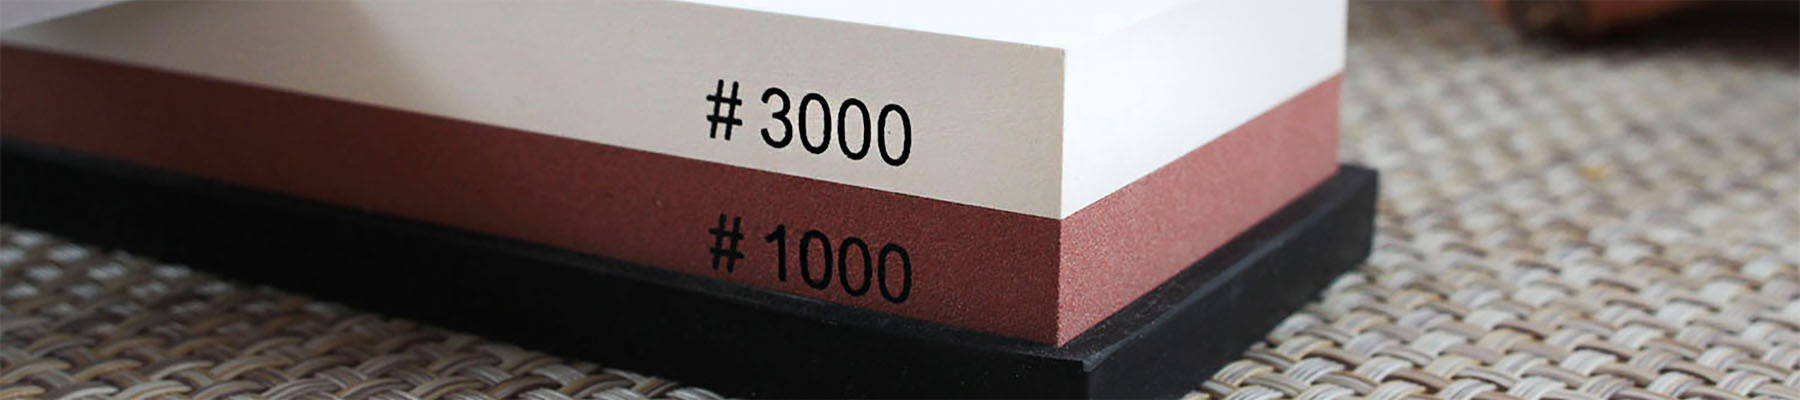 Wusaki Double-Sided Whetstone Grit 1000 and 3000